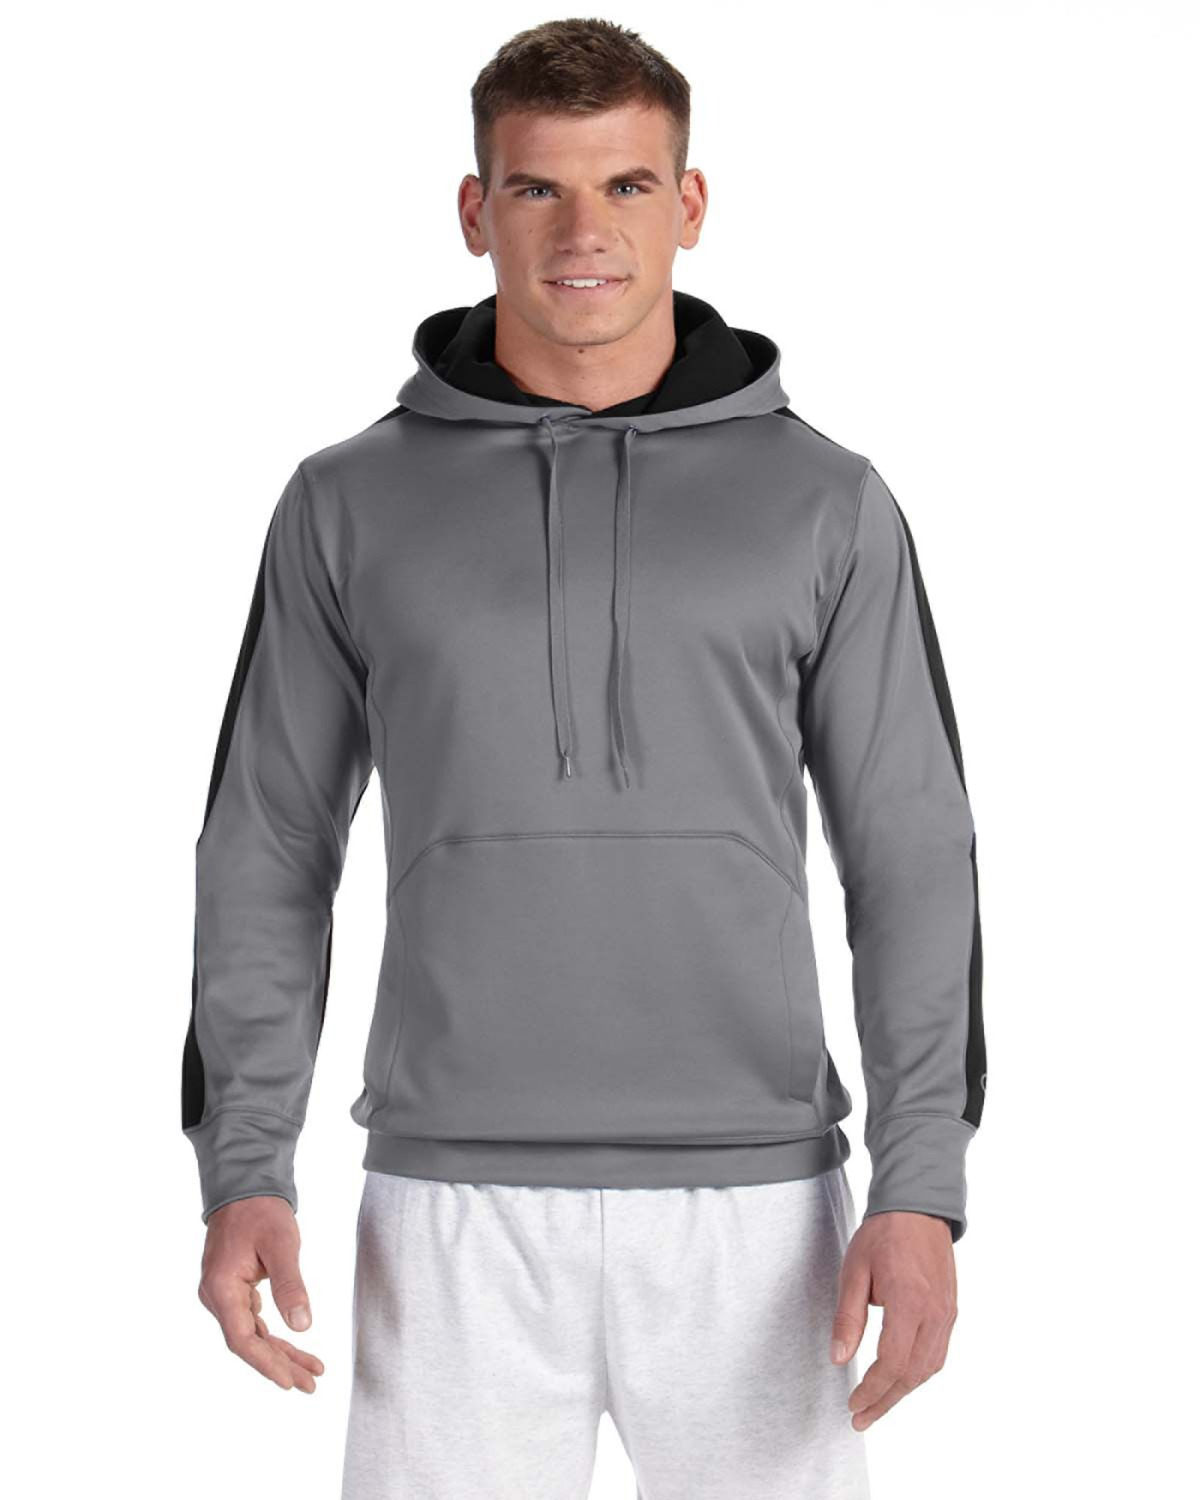 Champion S220 - Colorblocked Performance Hooded Pullover ...